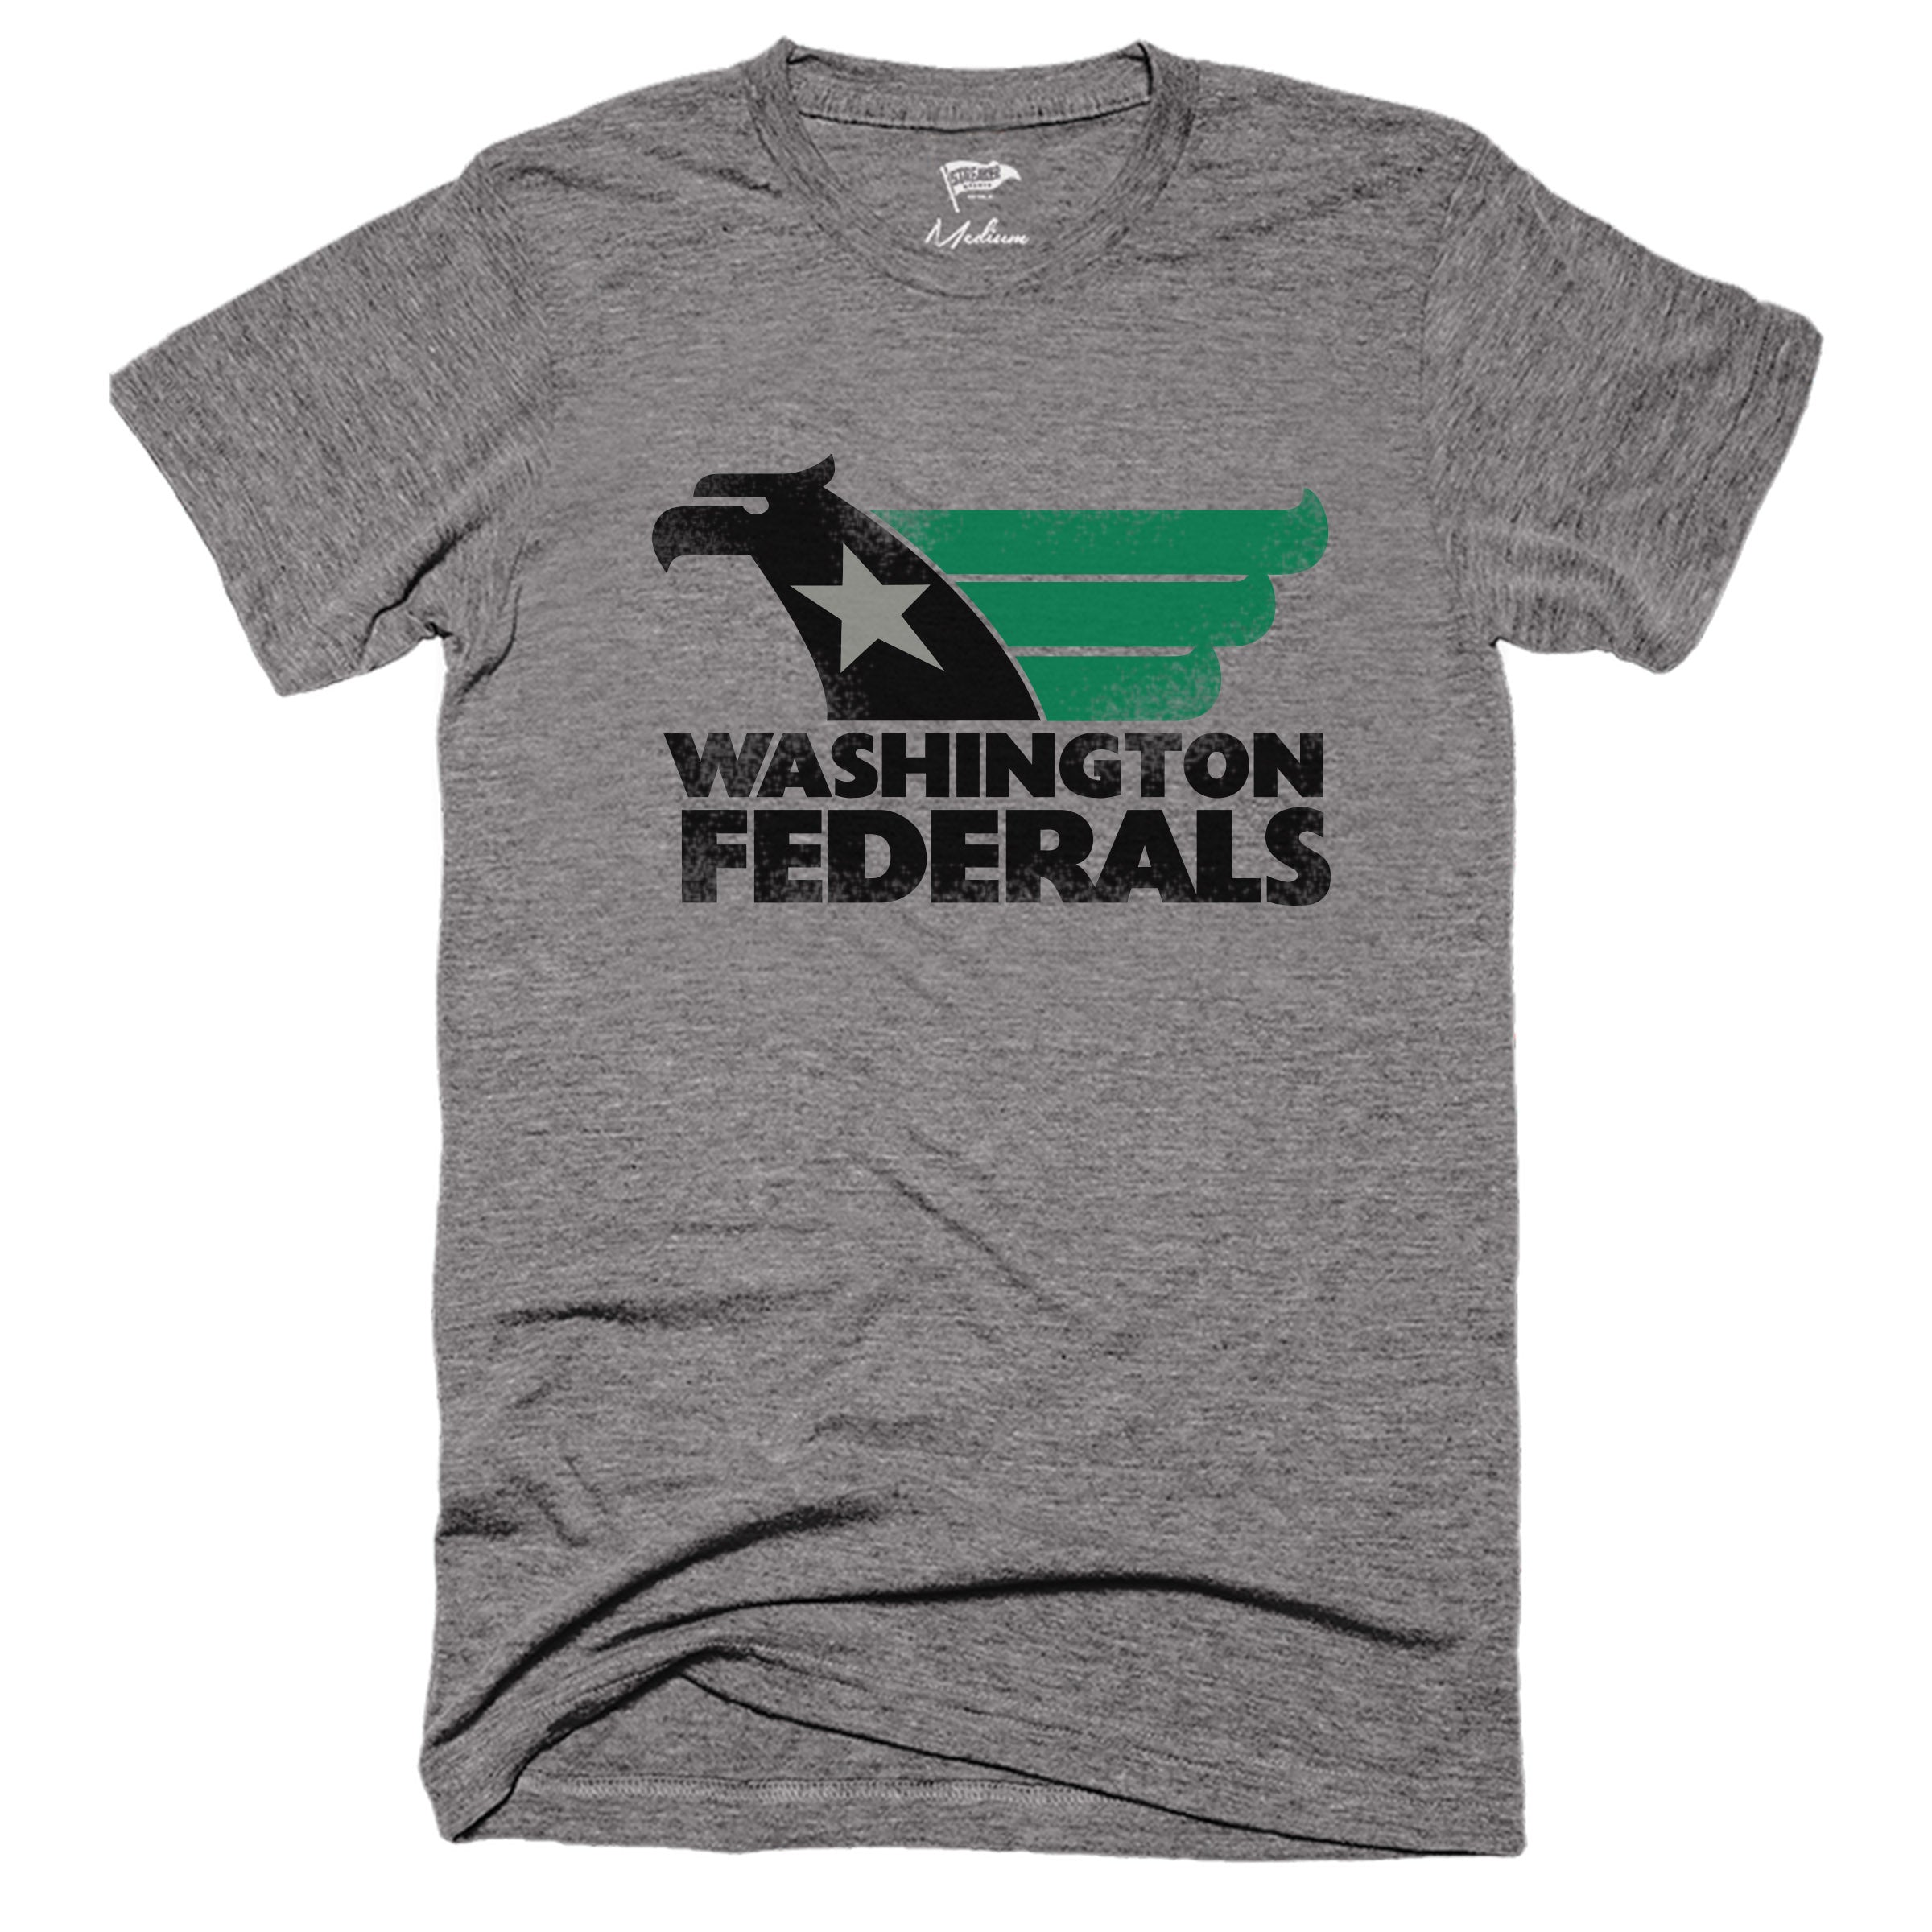 1983 Washington Federals Tee - Streaker Sports